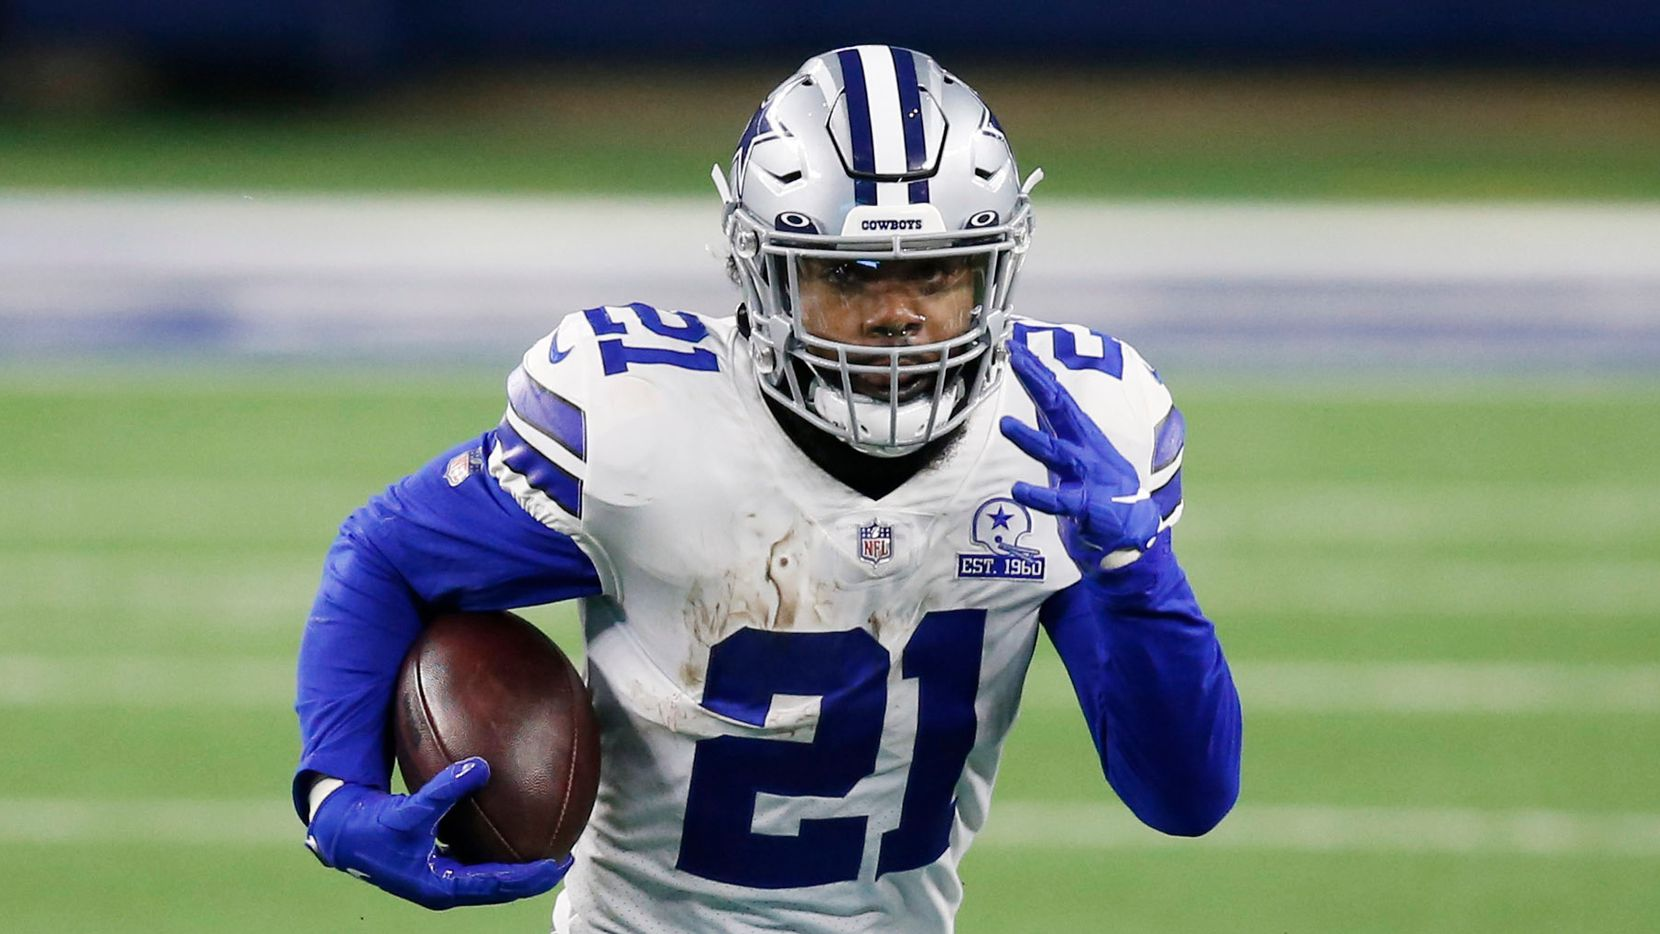 Dallas Cowboys running back Ezekiel Elliott (21) rushes up the field in a game against the Arizona Cardinals during the second quarter of play at AT&T Stadium on Monday, October 19, 2020 in Arlington, Texas.